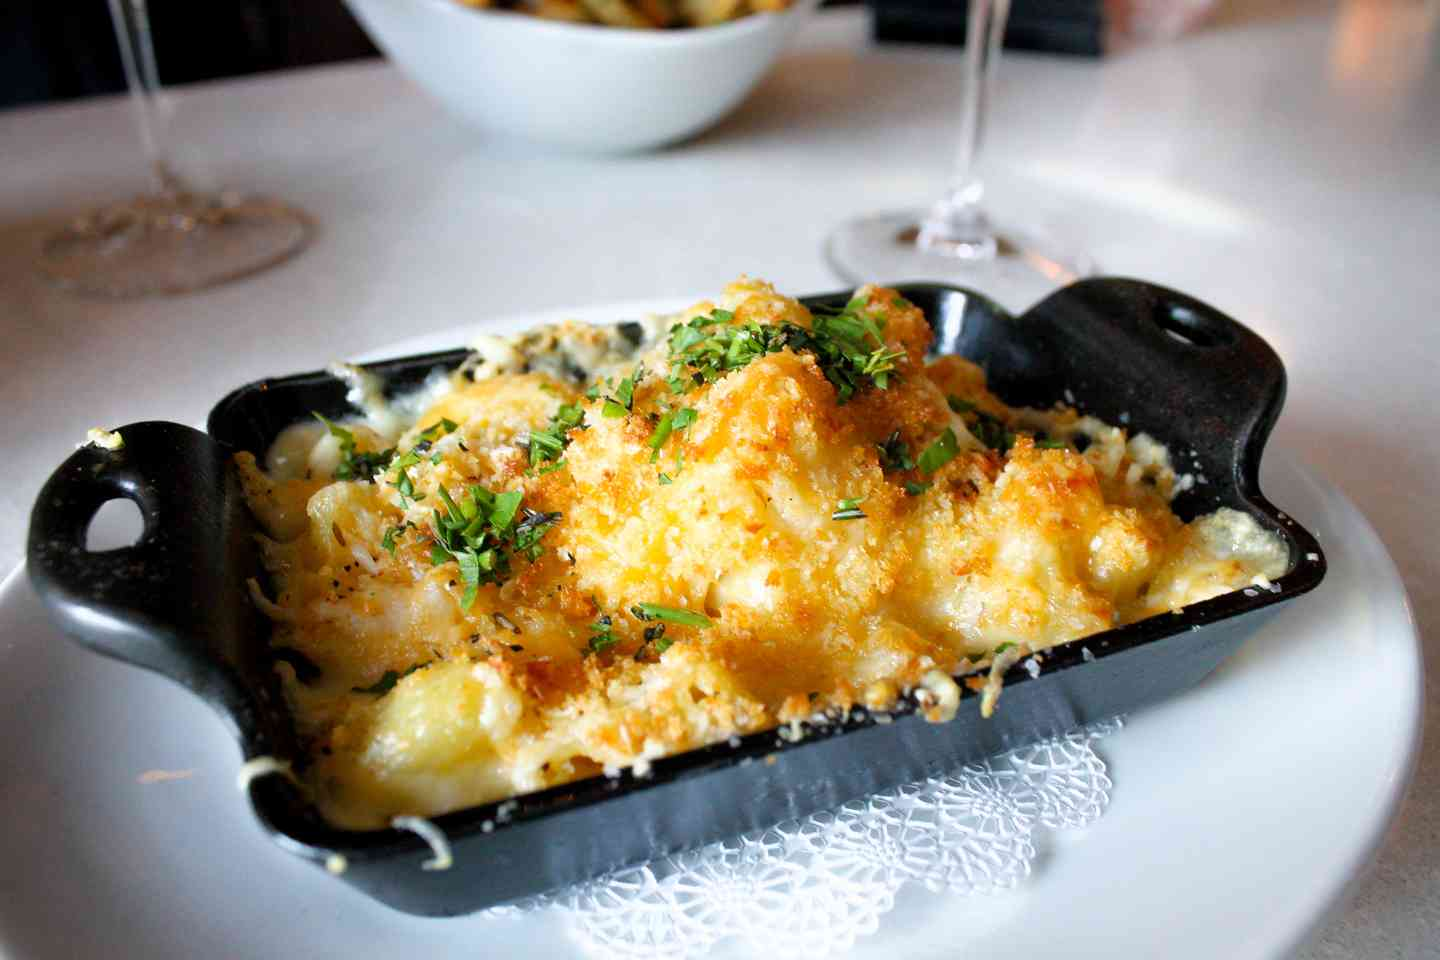 Baked Skillet of Mac and Cheese